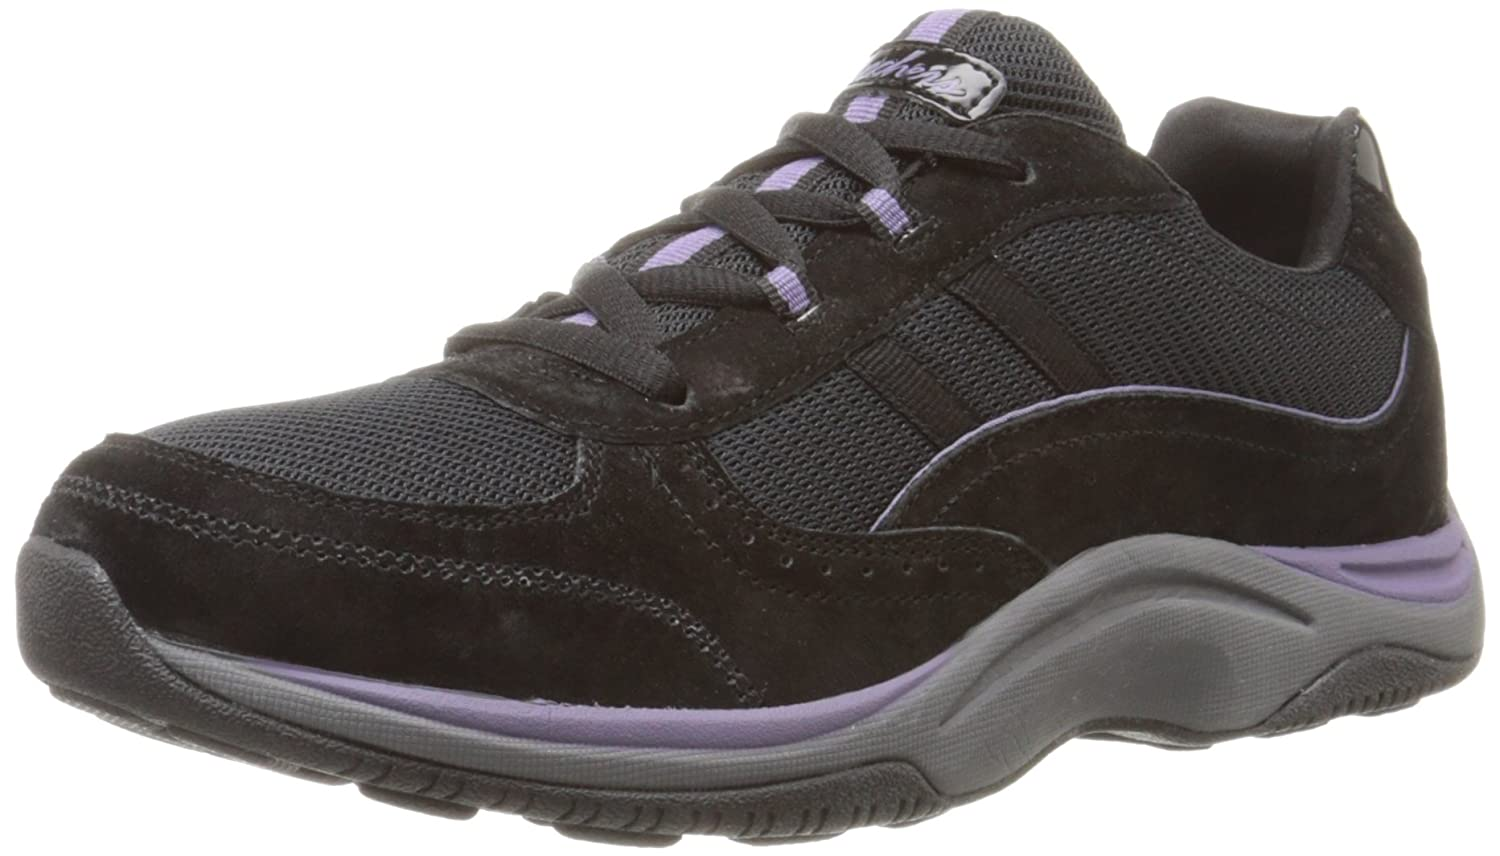 Skechers Women's Pedometer Fashion Sneaker B00YGDGKEW 9.5 B(M) US|Black